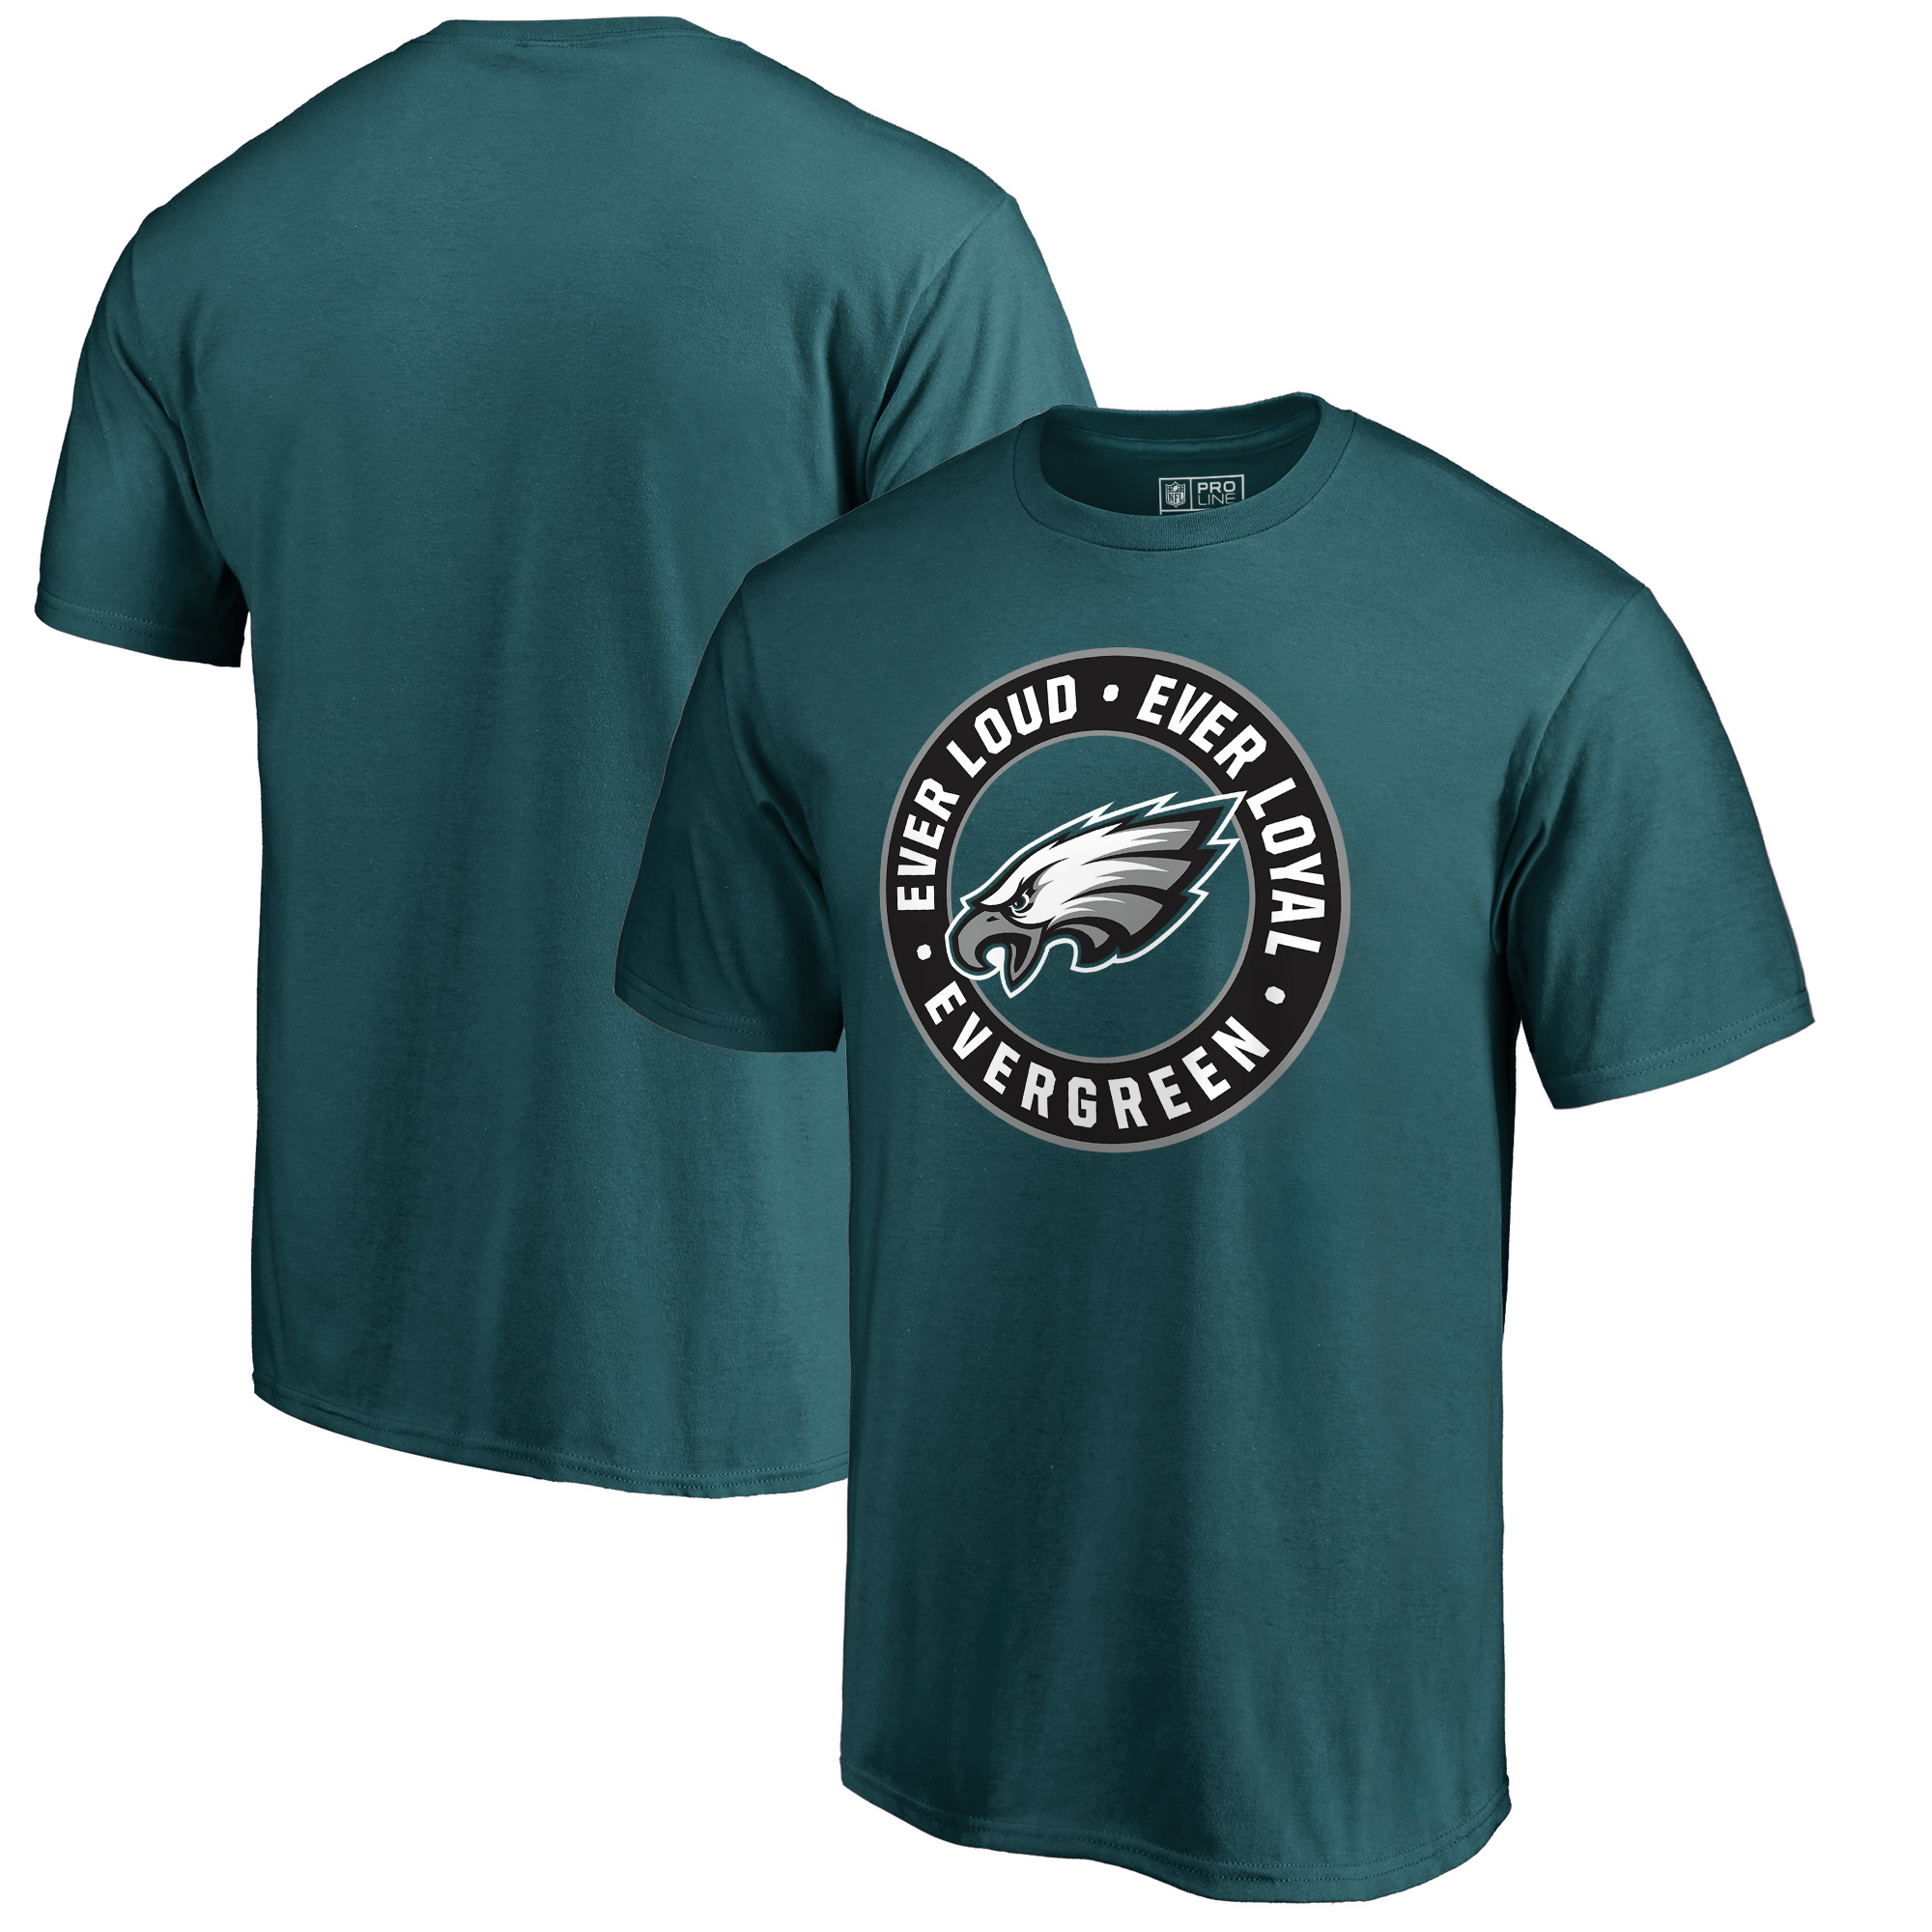 Philadelphia Eagles NFL Pro Line by Fanatics Branded Hometown Collection Evergreen T-Shirt - Midnight Green